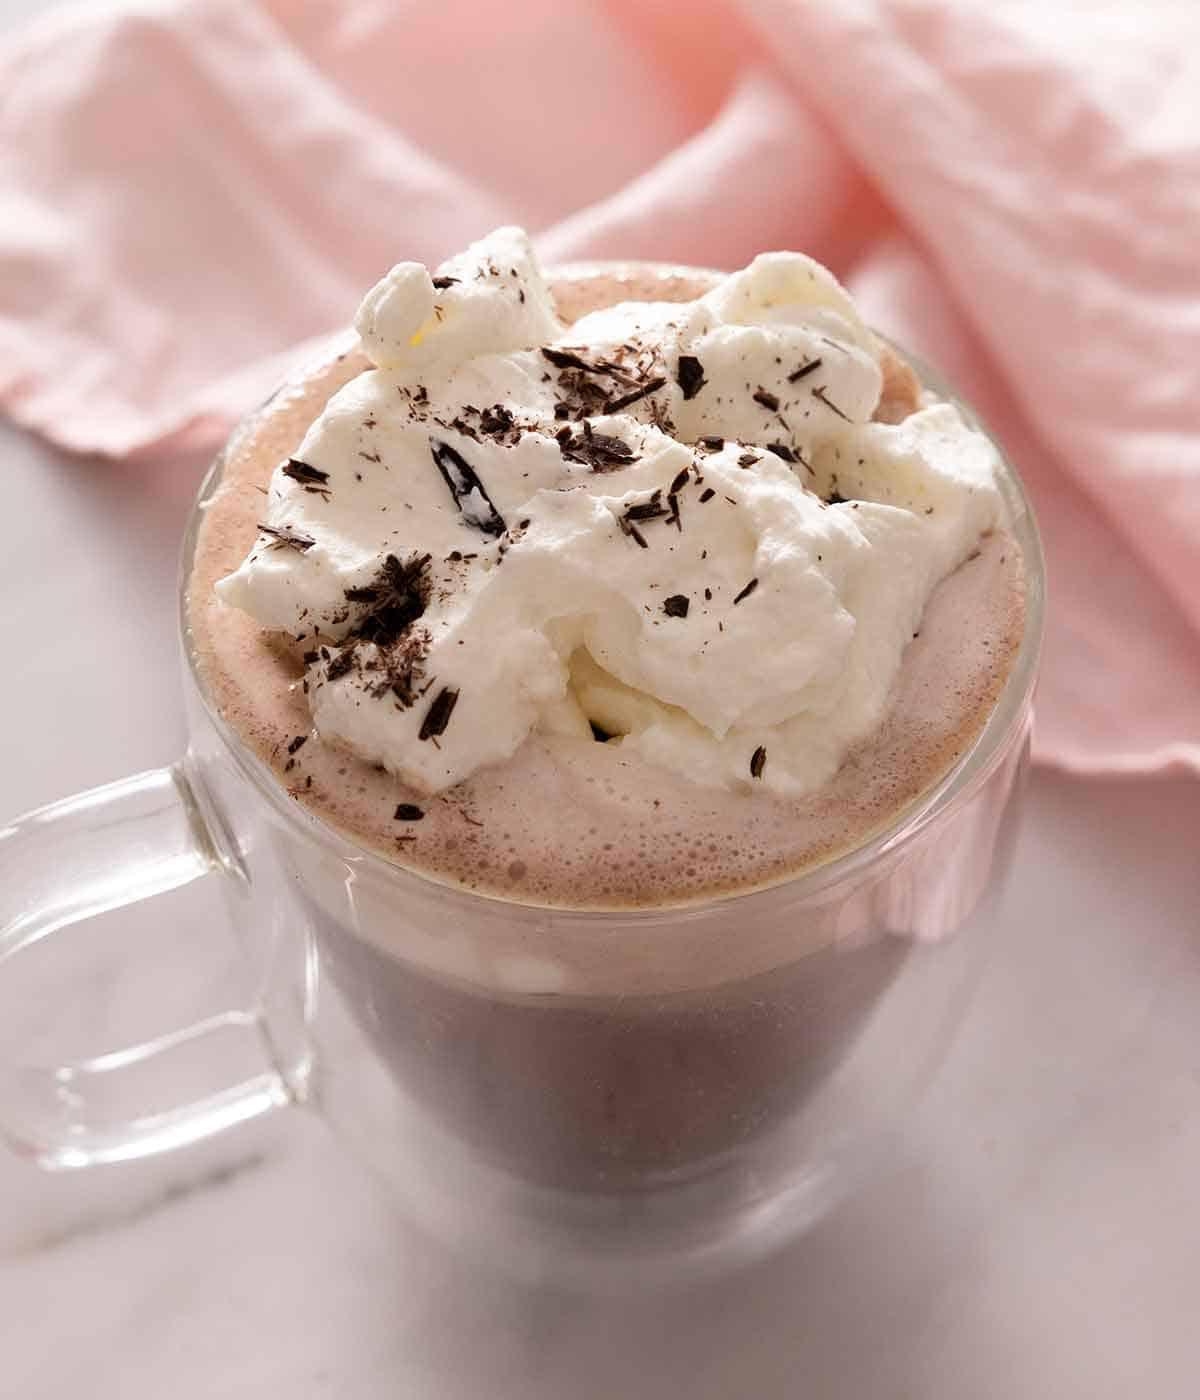 A cup of hot chocolate with whipped cream on top and chocolate shavings.